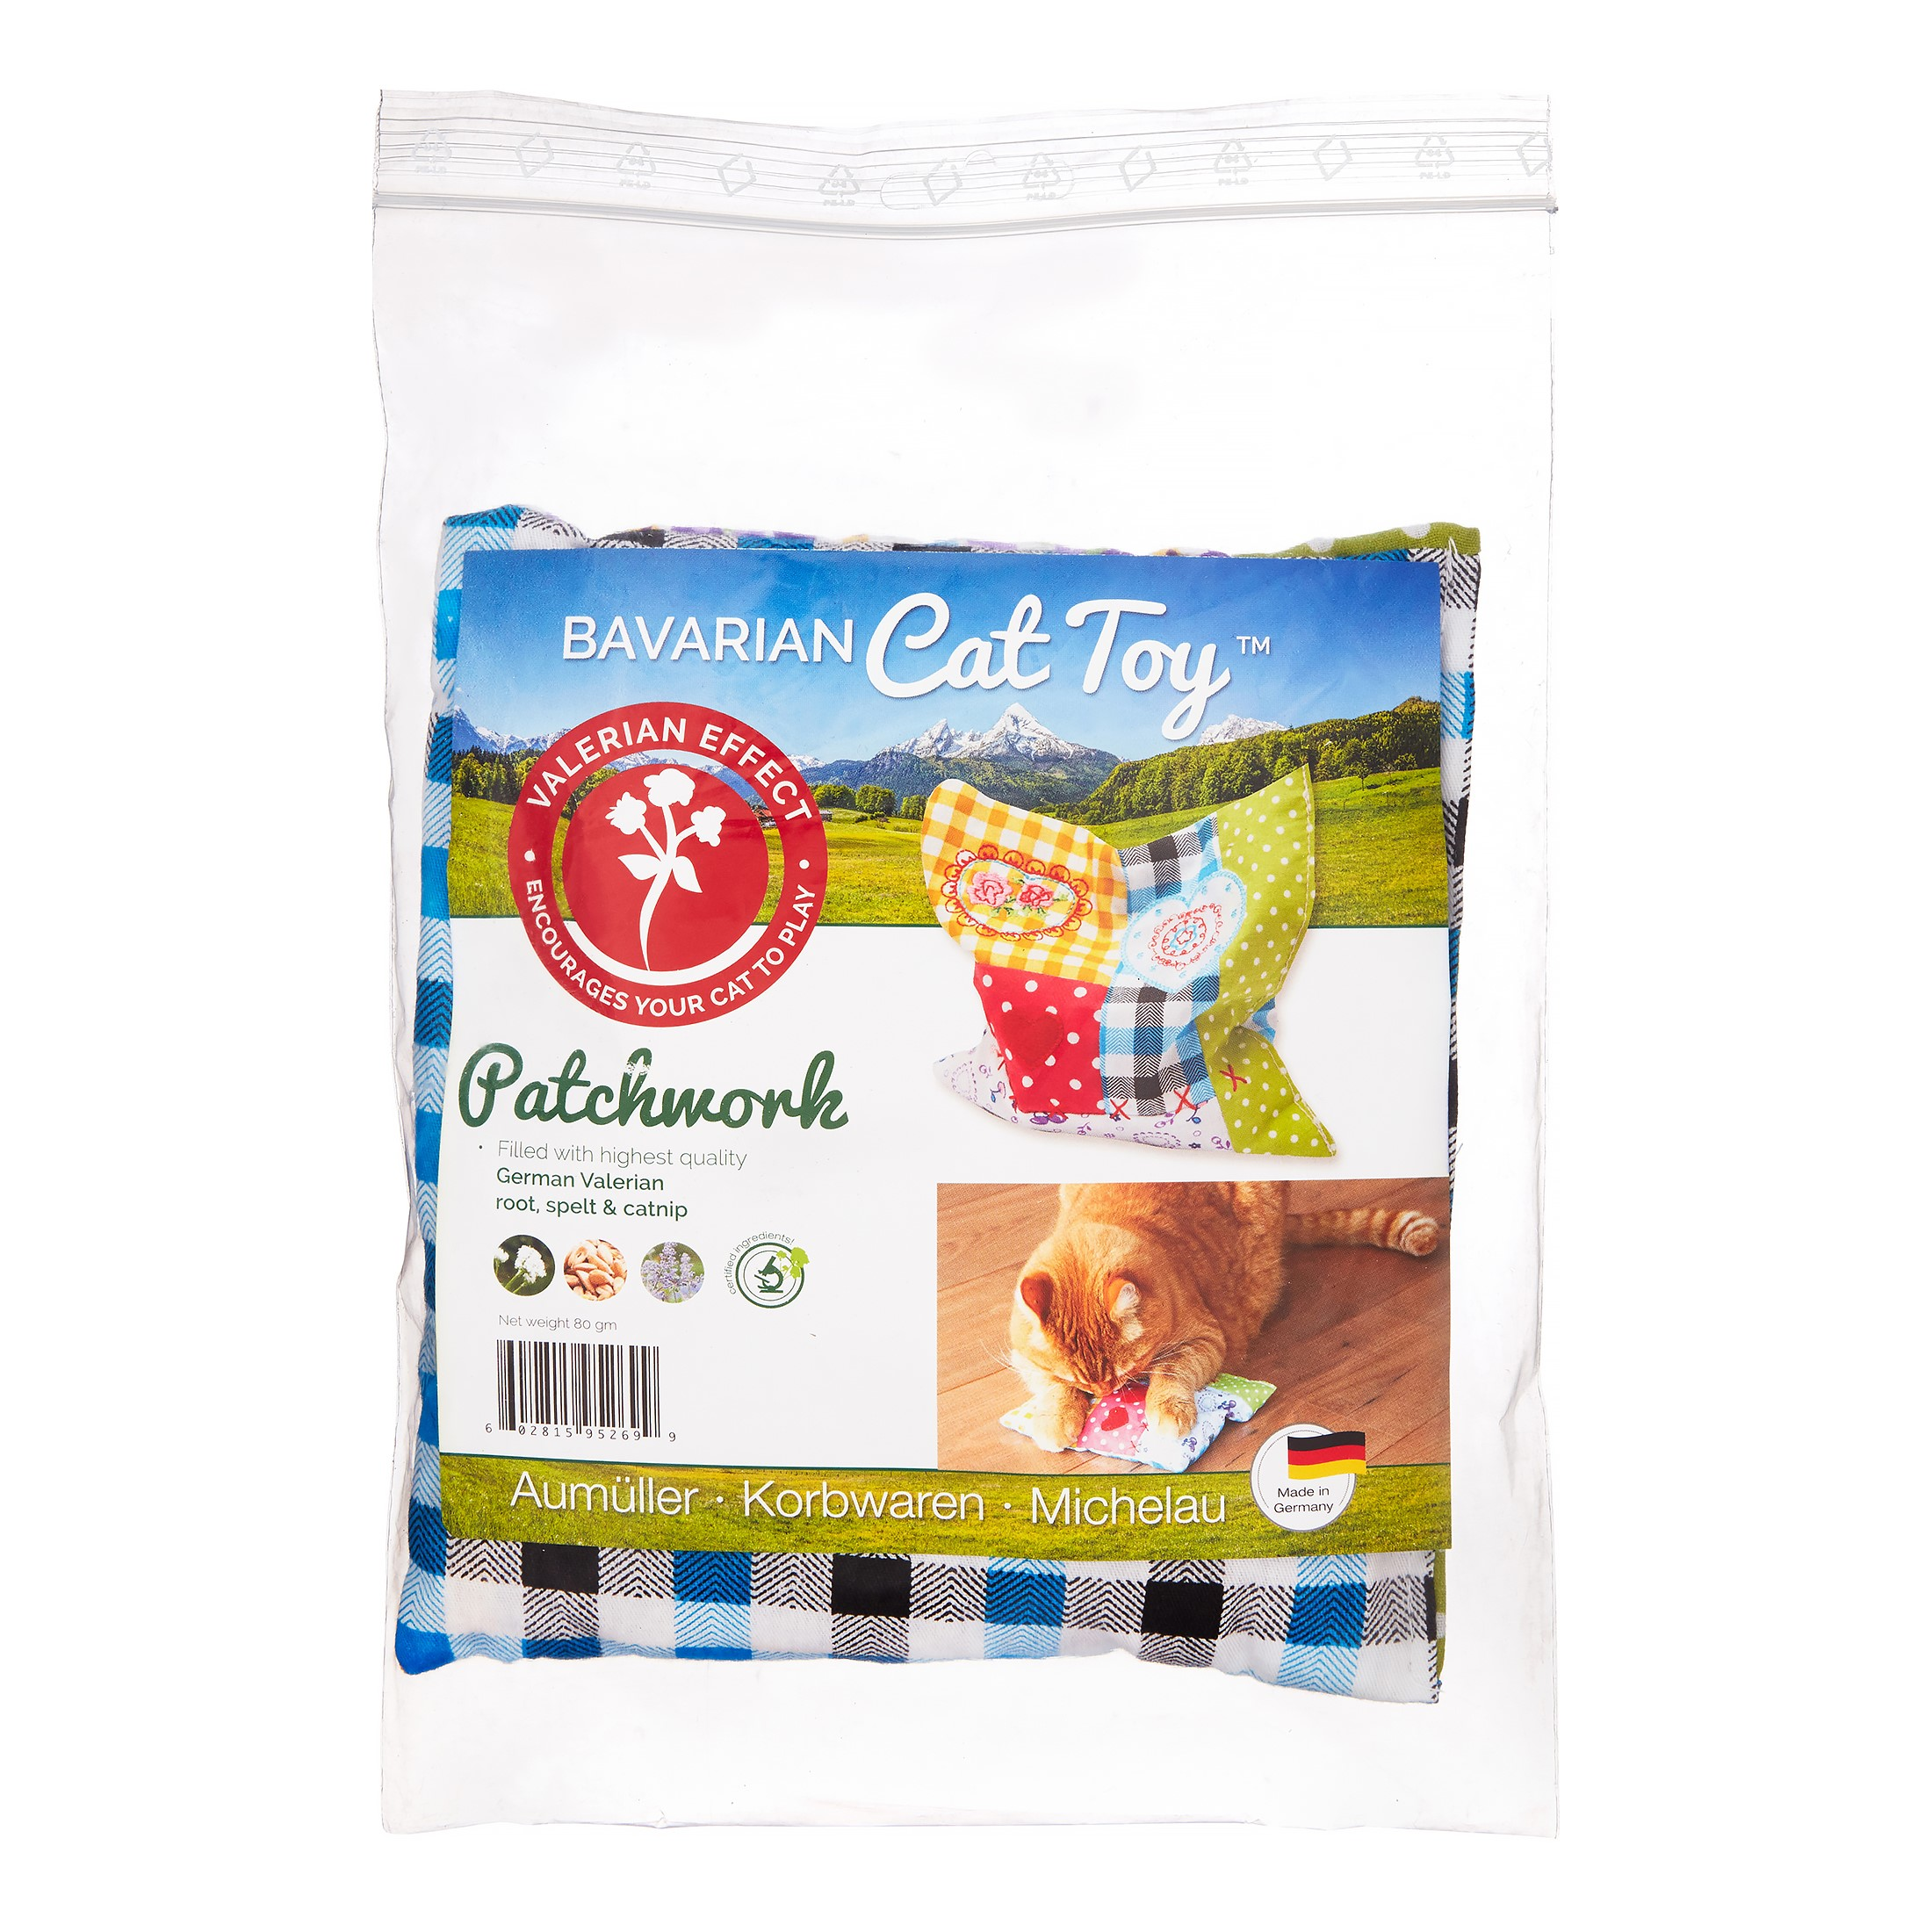 Bavarian Cat Toys Patchwork Pillow Catnip Cat Toy, Medium by Bavarian Cat Toys